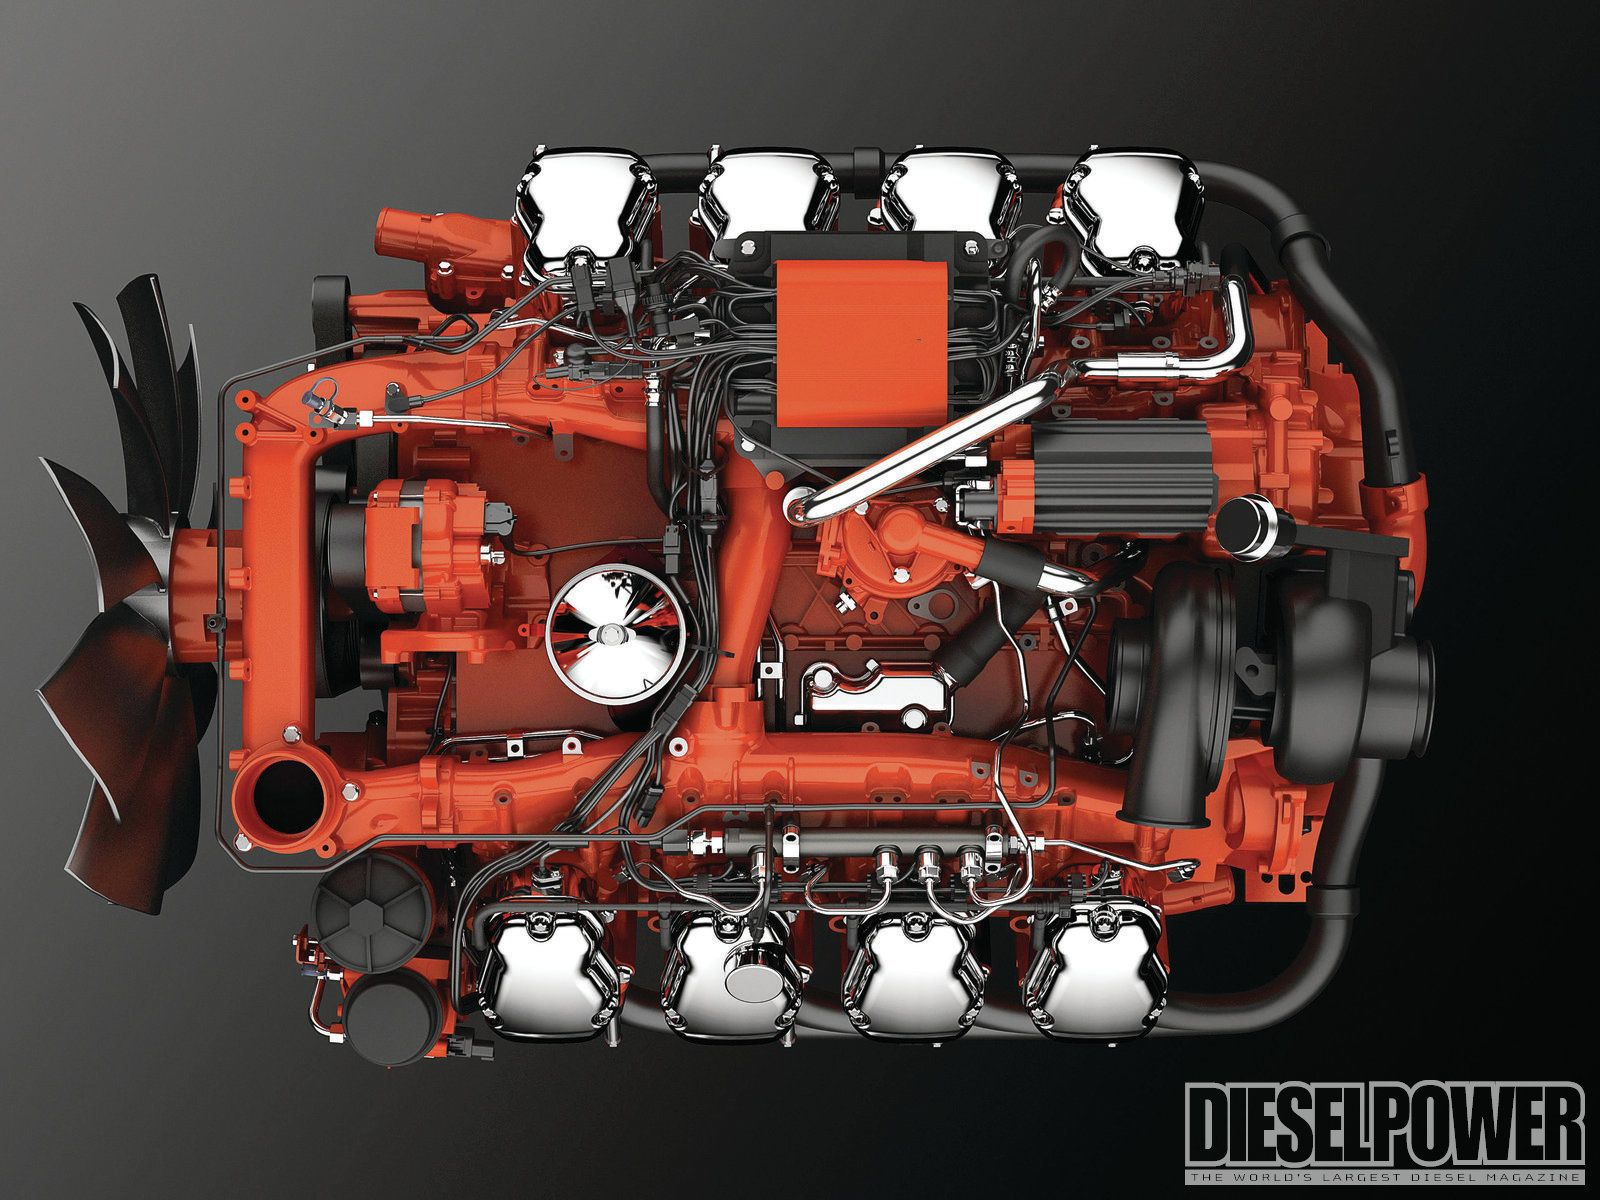 Pin by Circumstance Sixonethree on Engines  | Engineering, Detroit